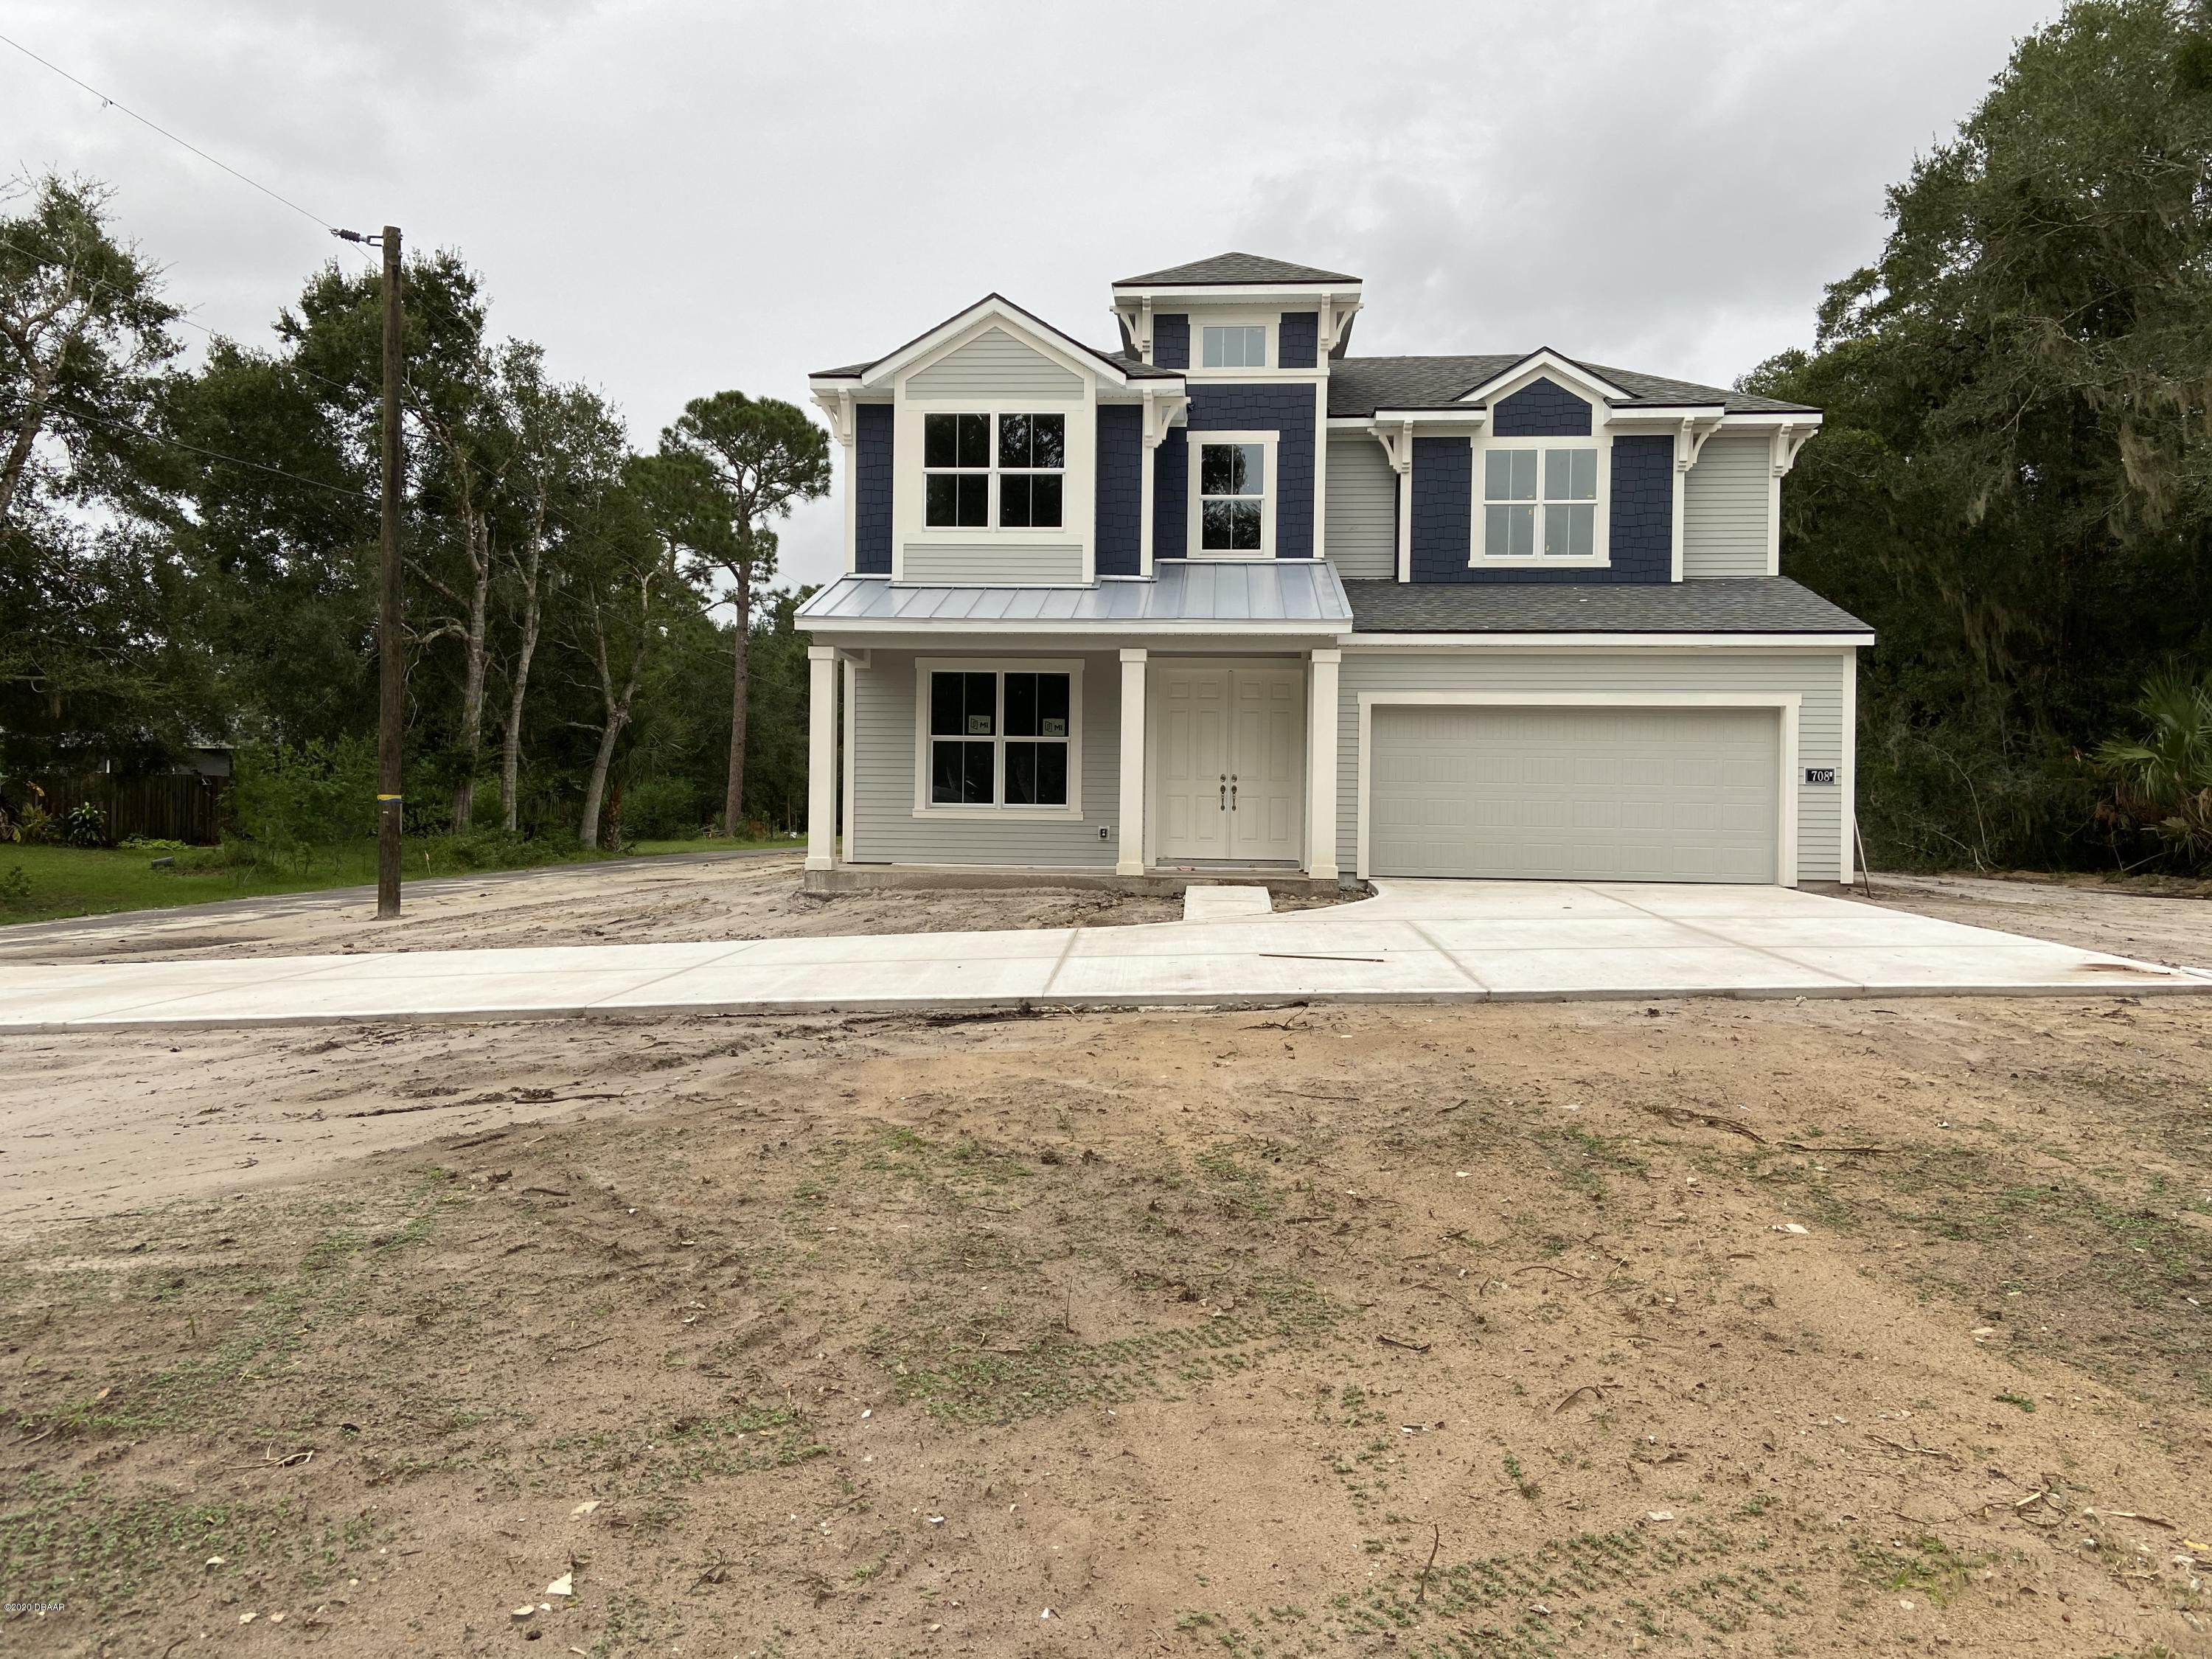 Photo of 708 S Glencoe Road, New Smyrna Beach, FL 32168